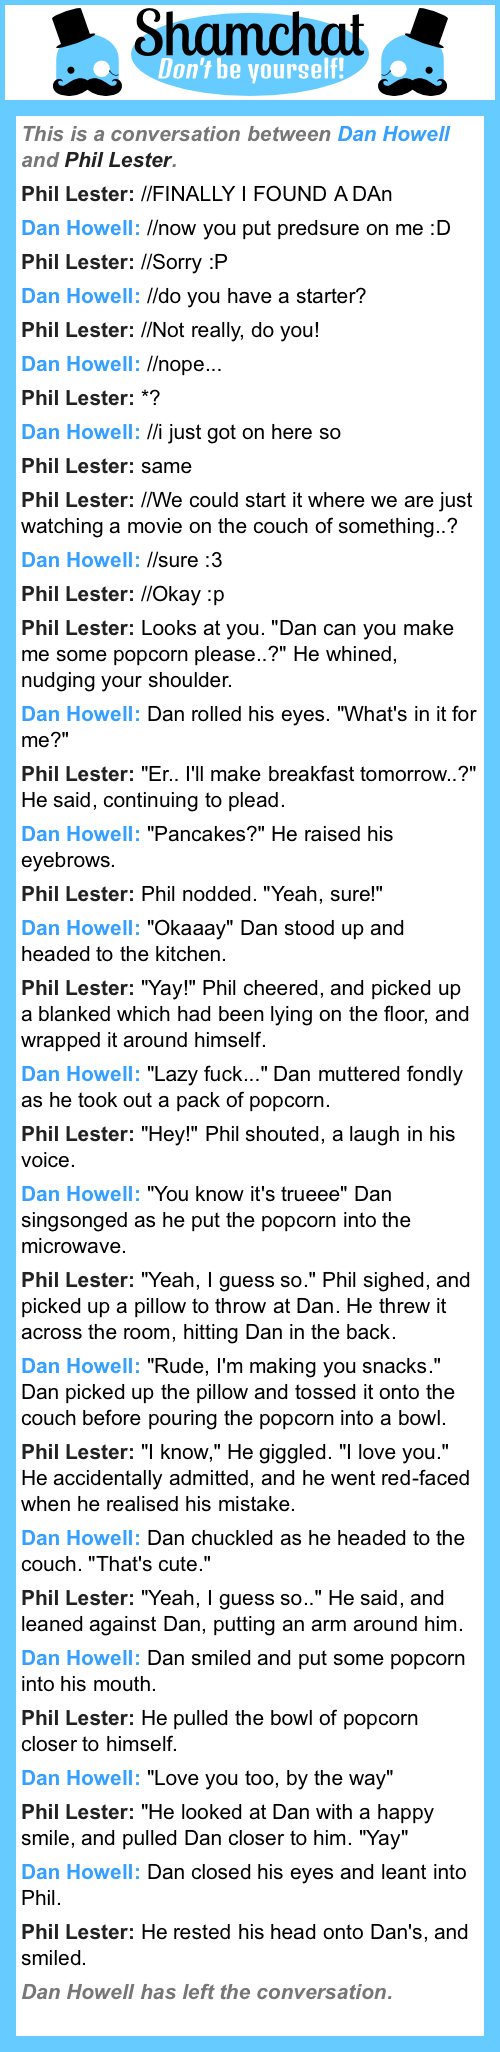 A conversation between Phil Lester and Dan Howell